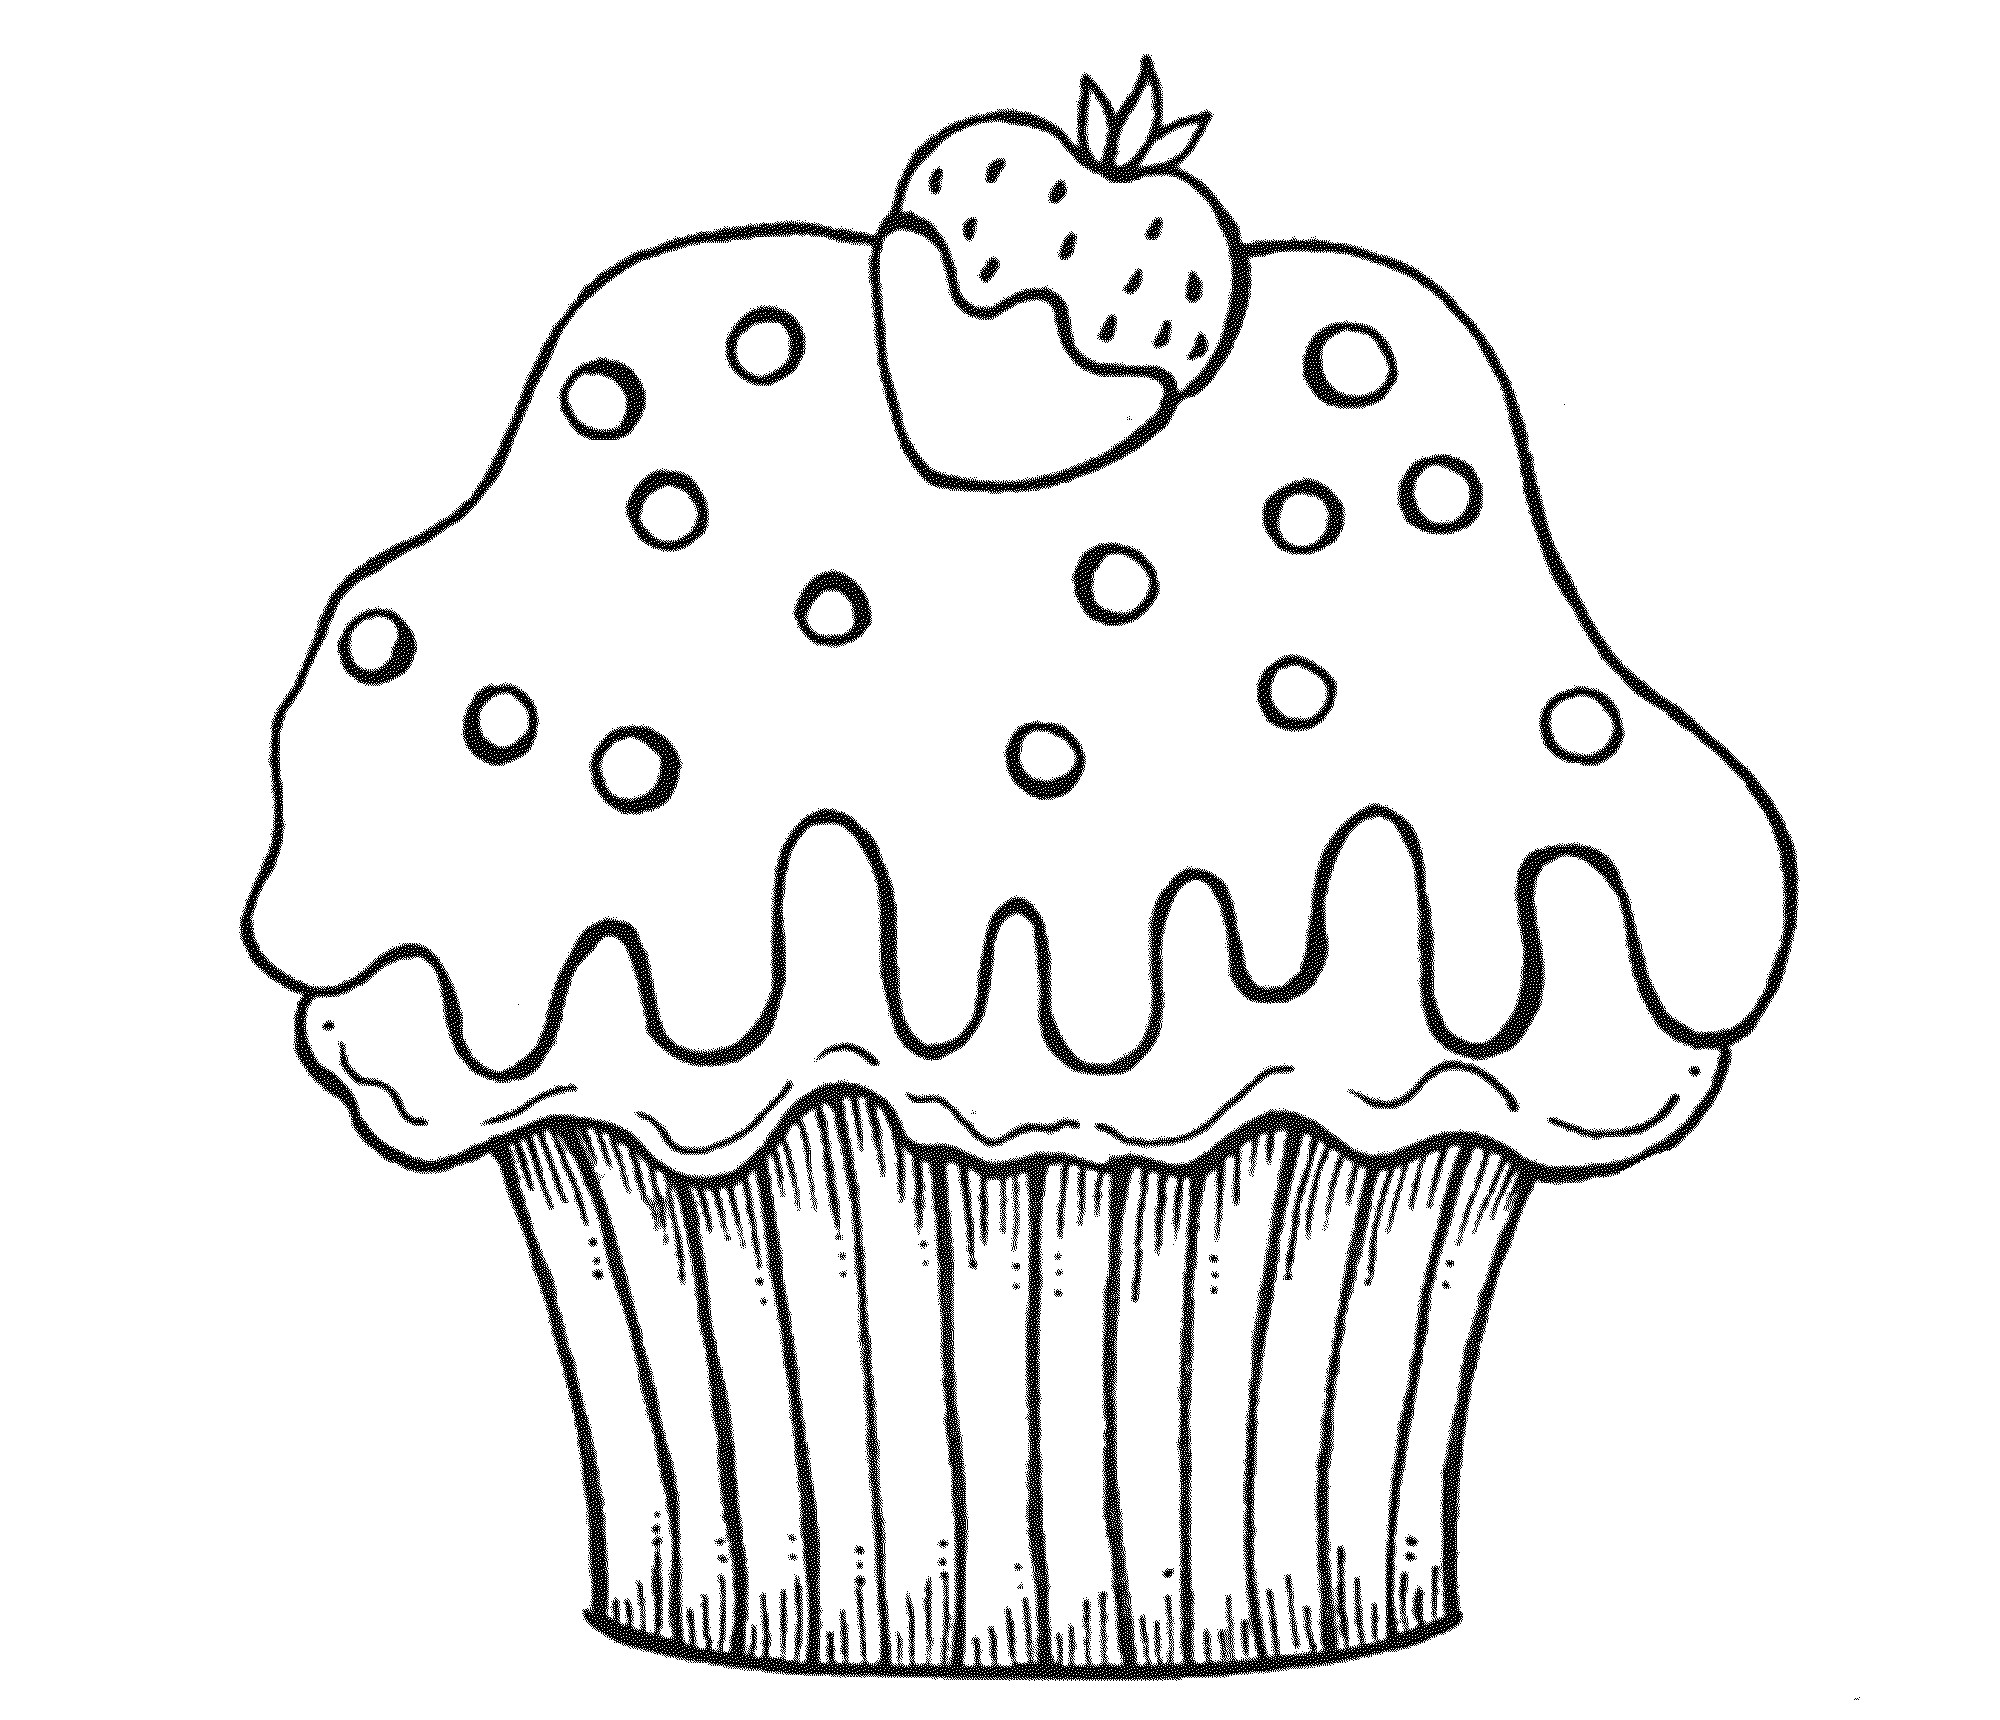 cartoon cupcake coloring pages hello kitty cupcake coloring pages at getcoloringscom cartoon coloring cupcake pages